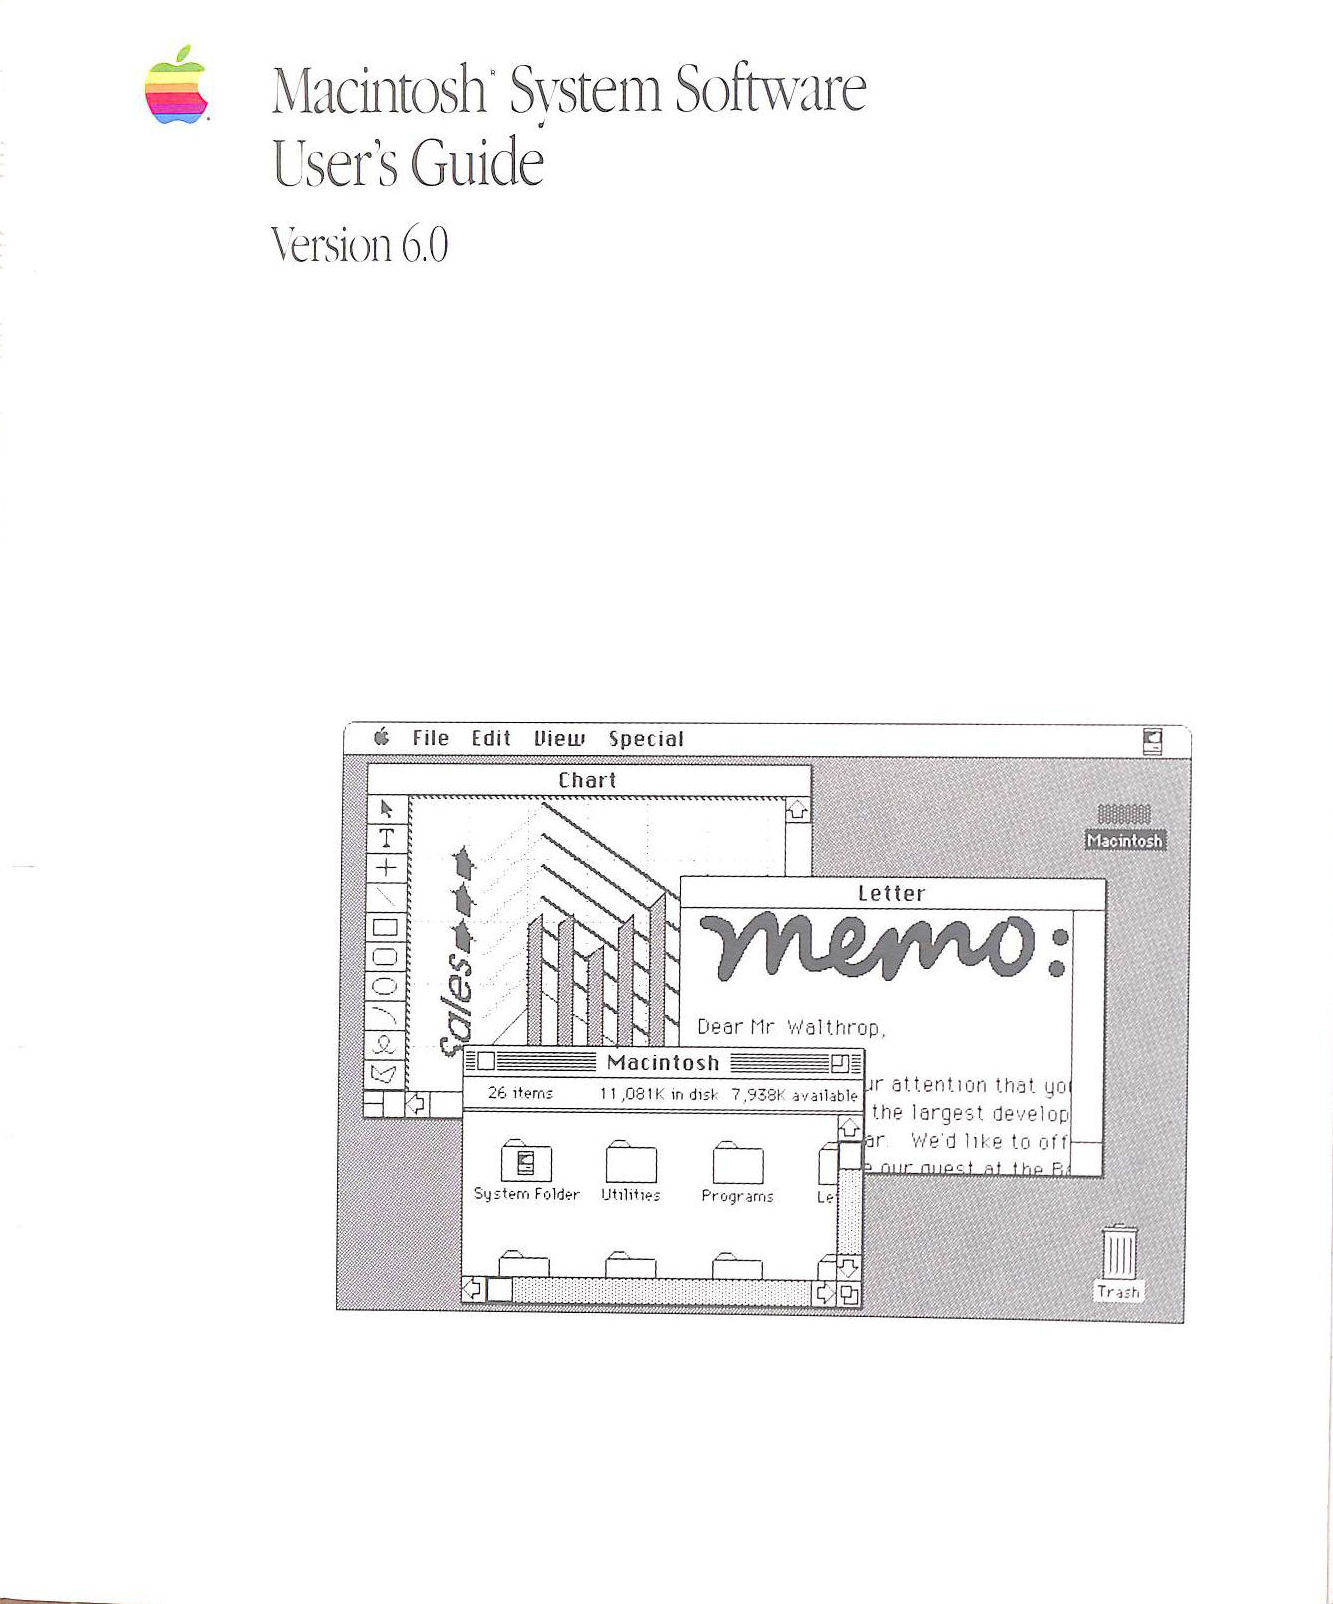 Image for Macintosh System Software User's Guide version 6.0